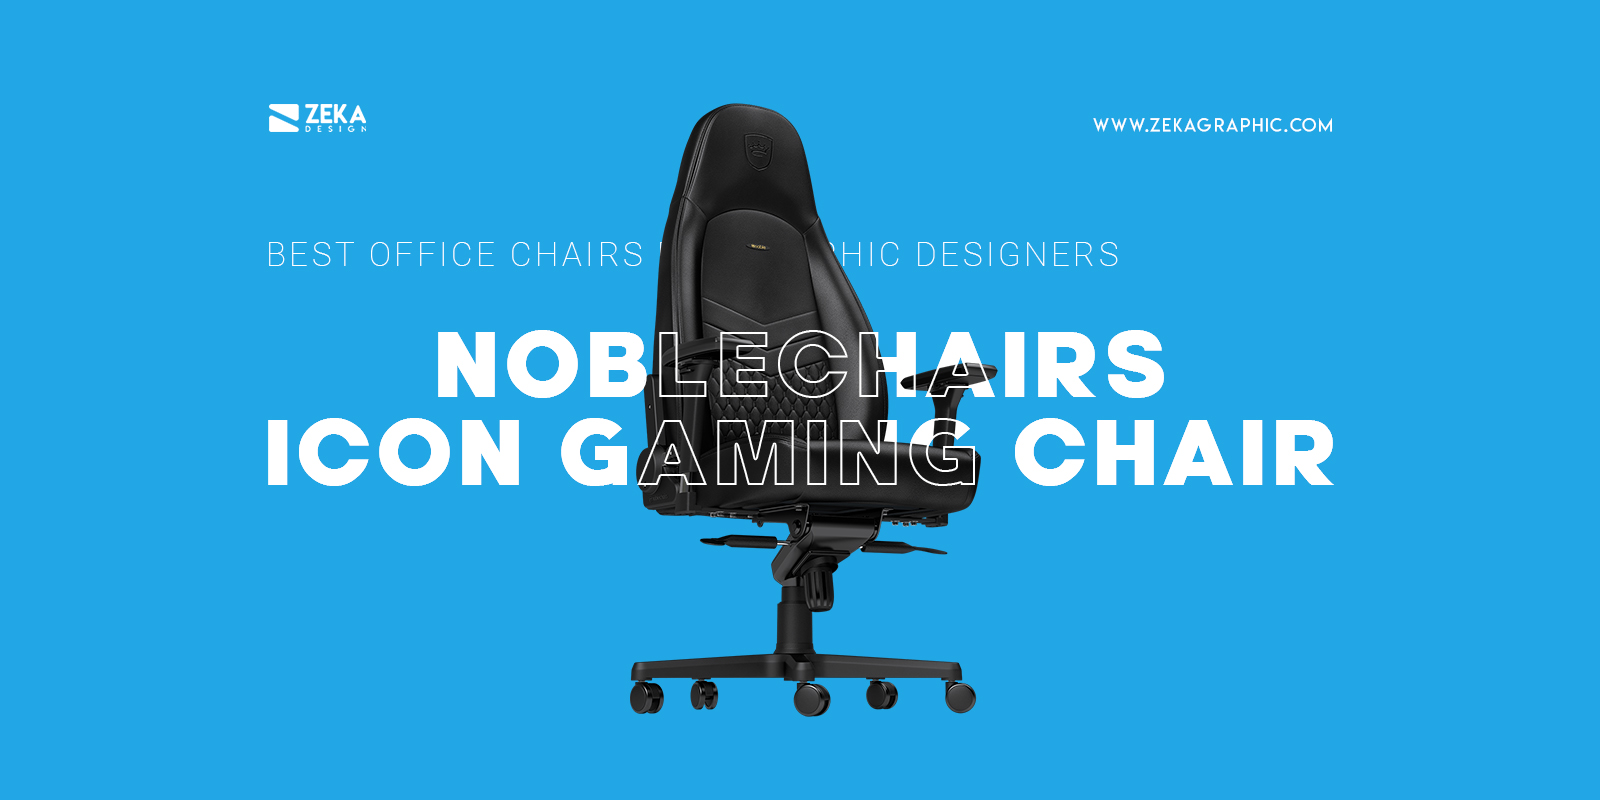 Noblechairs Icon Gaming Chair Best Gaming Office Chair For Graphic Designers